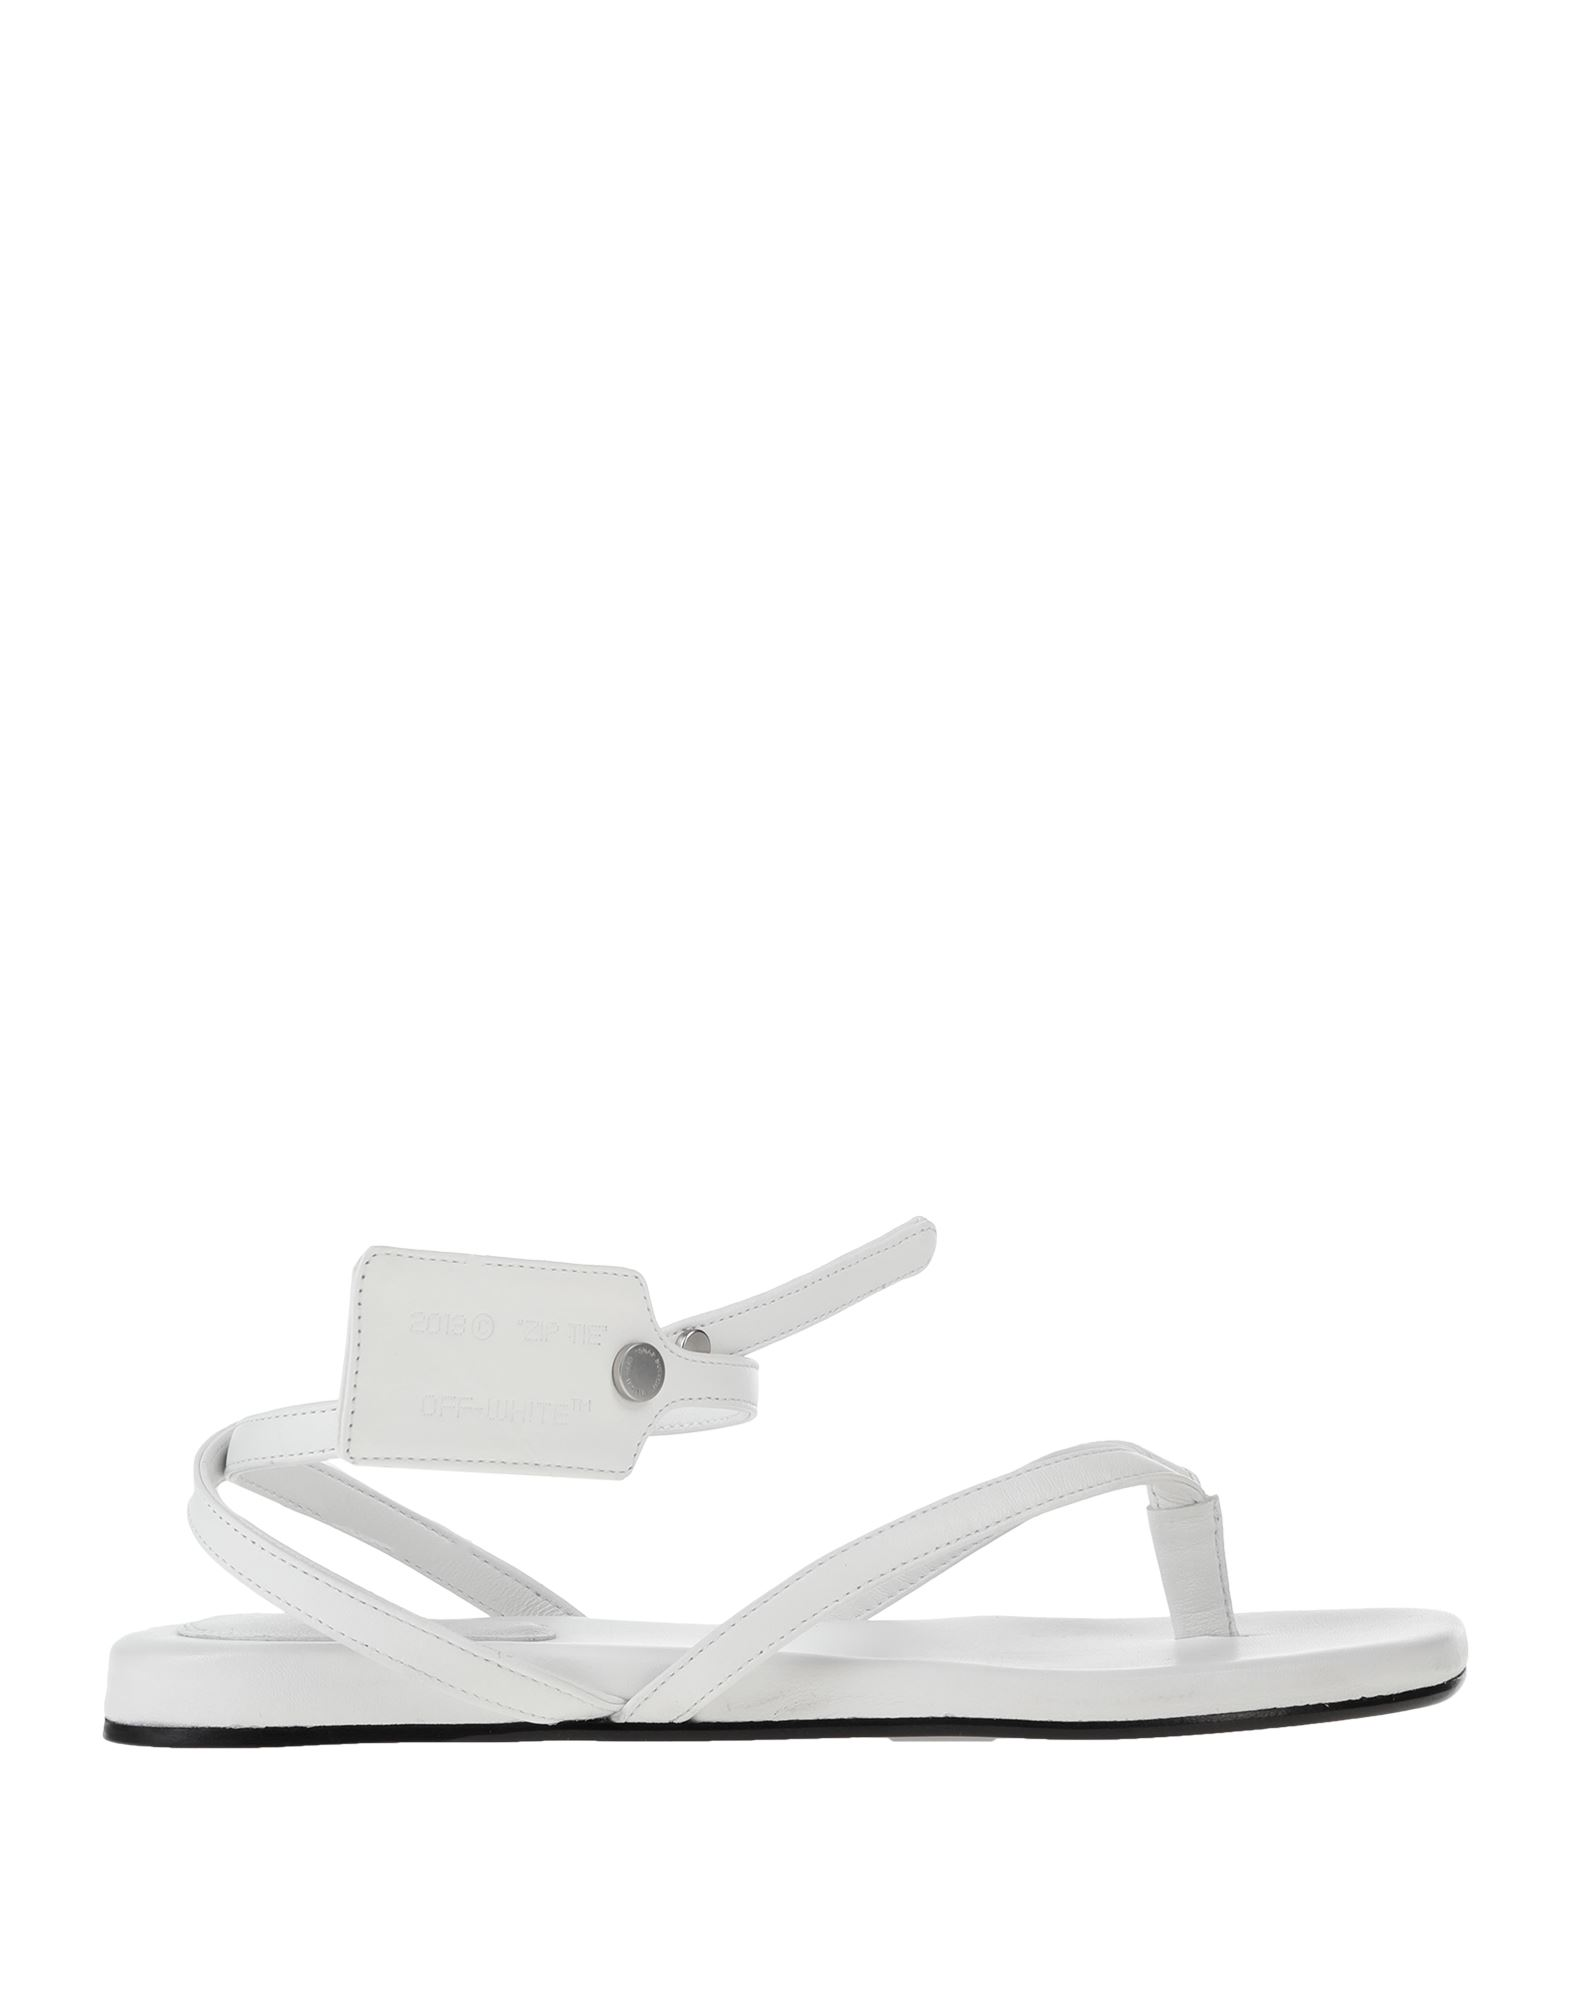 OFF-WHITE™ Toe strap sandals. leather, logo, solid color, snap buttons fastening, round toeline, flat, leather lining, leather sole, contains non-textile parts of animal origin, small sized. Soft Leather